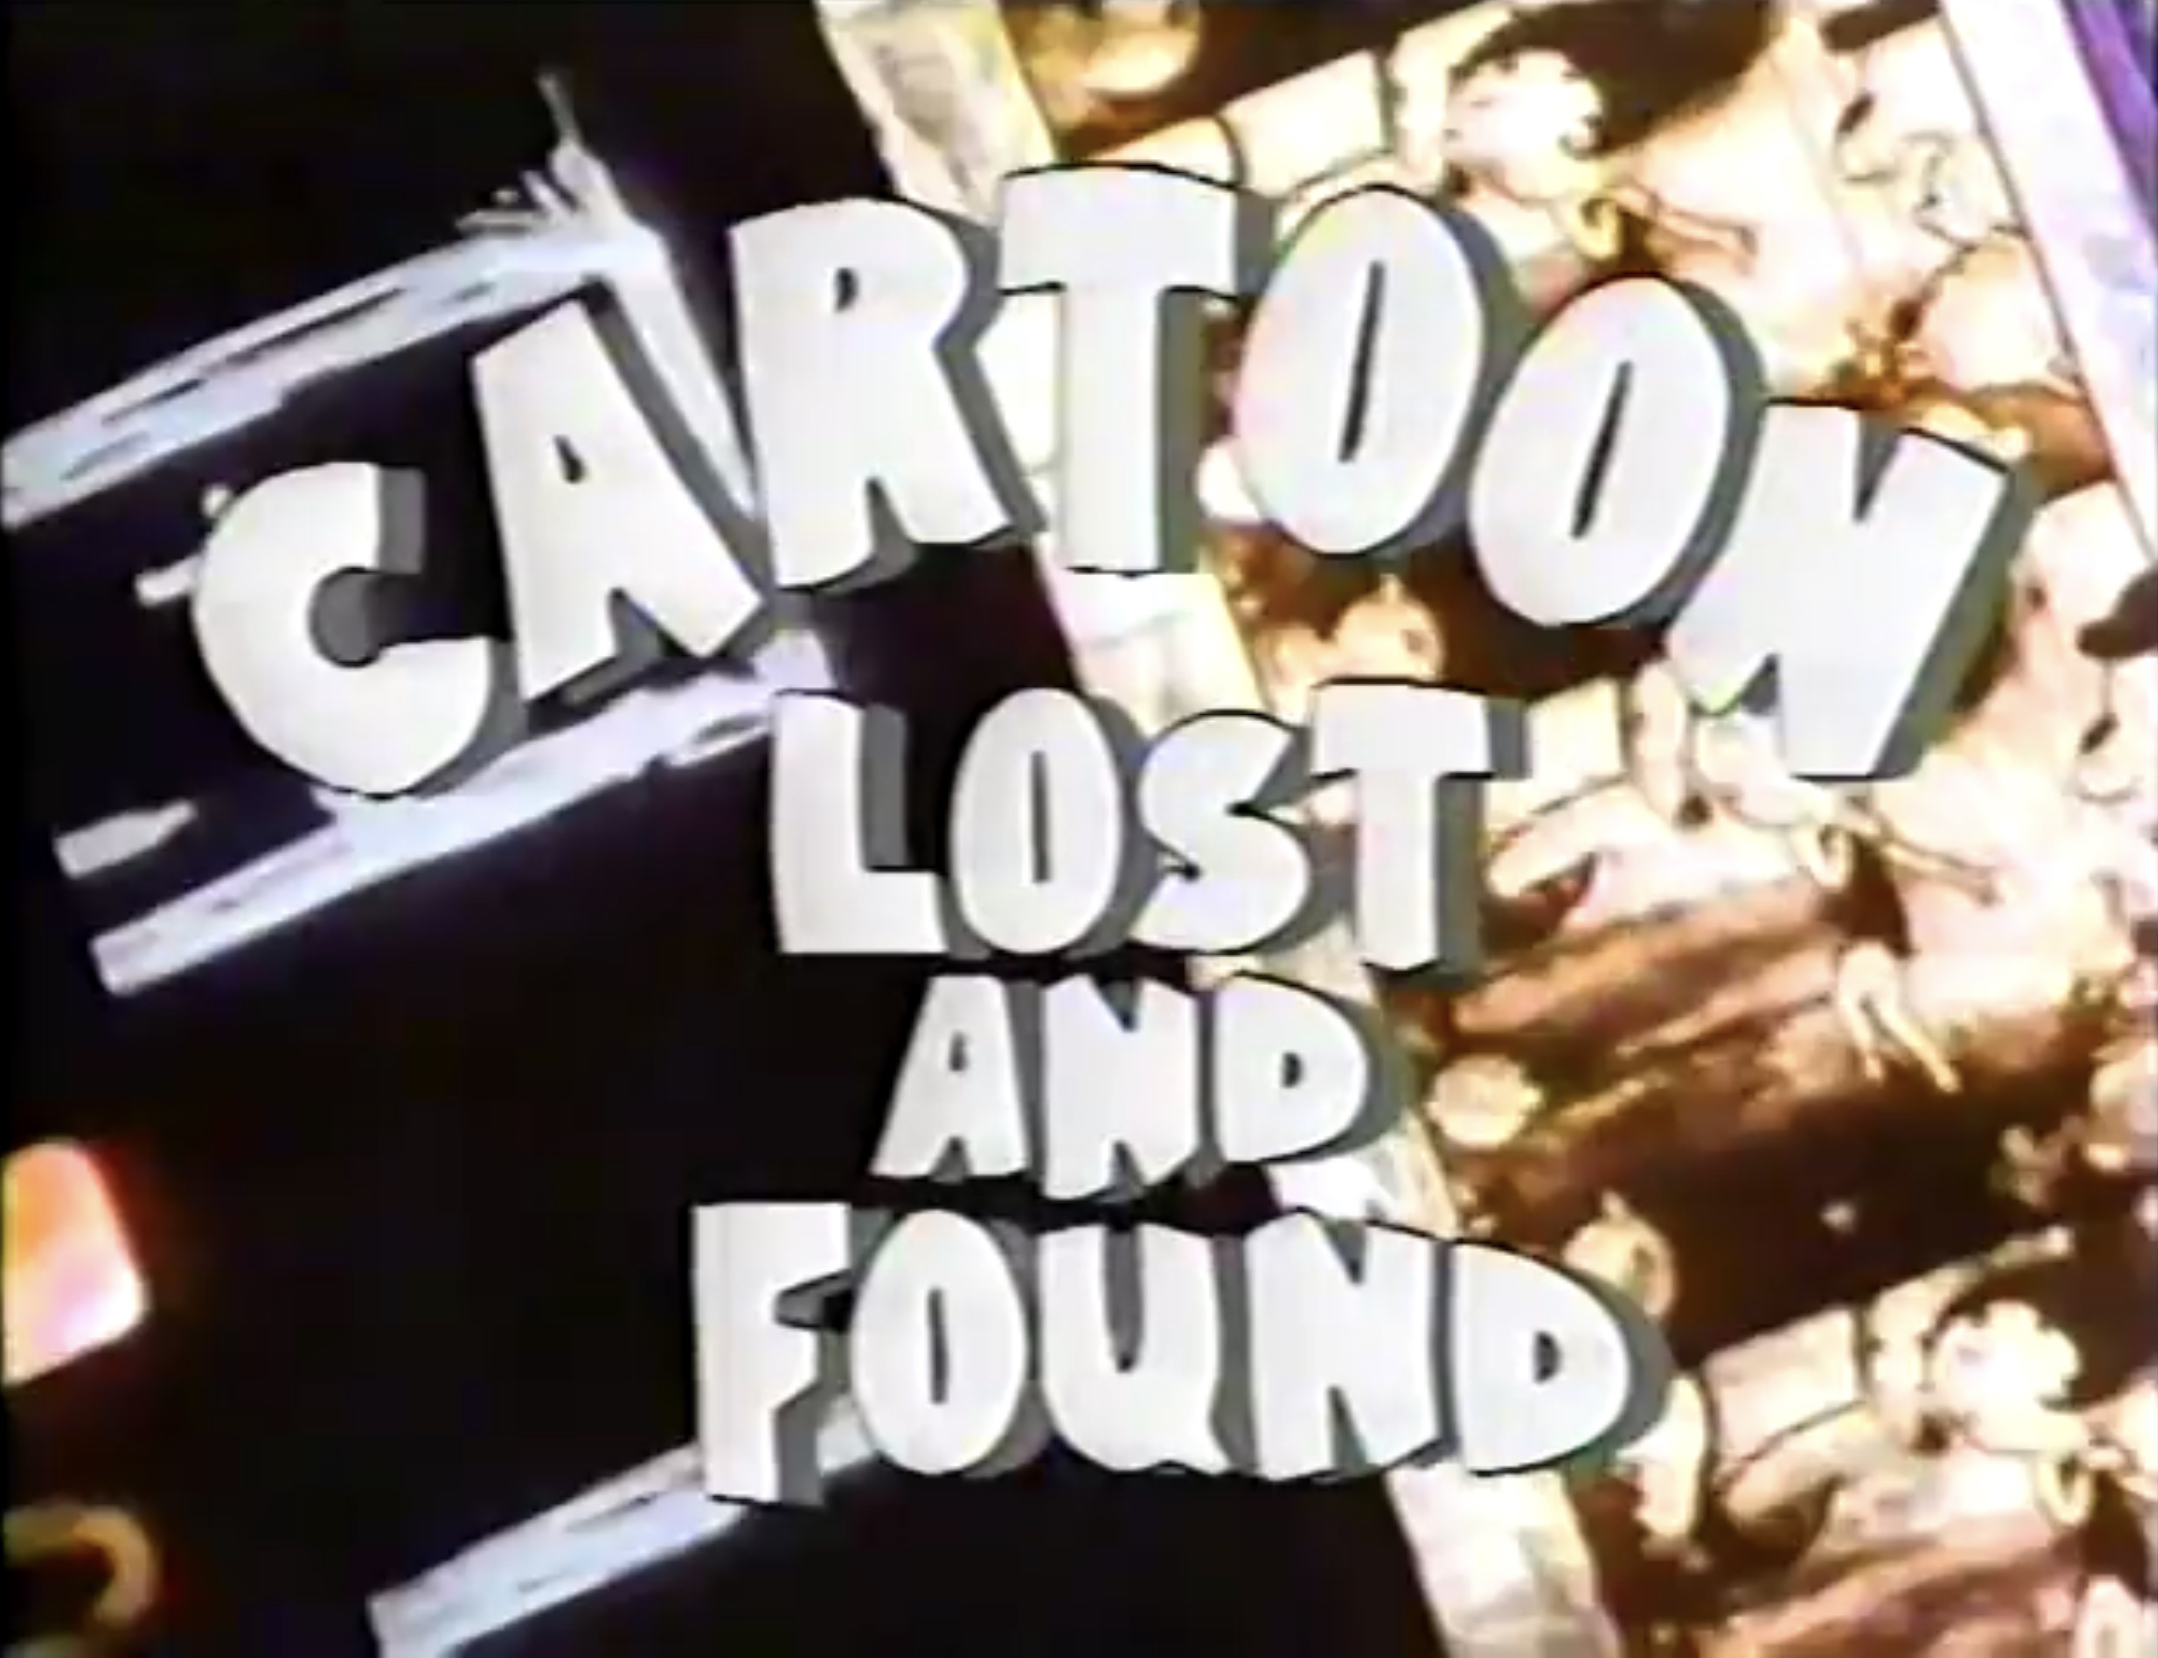 Cartoon Lost And Found - Cartoon Lost and Found (found live-action/animated Nick at Nite special; 1990)